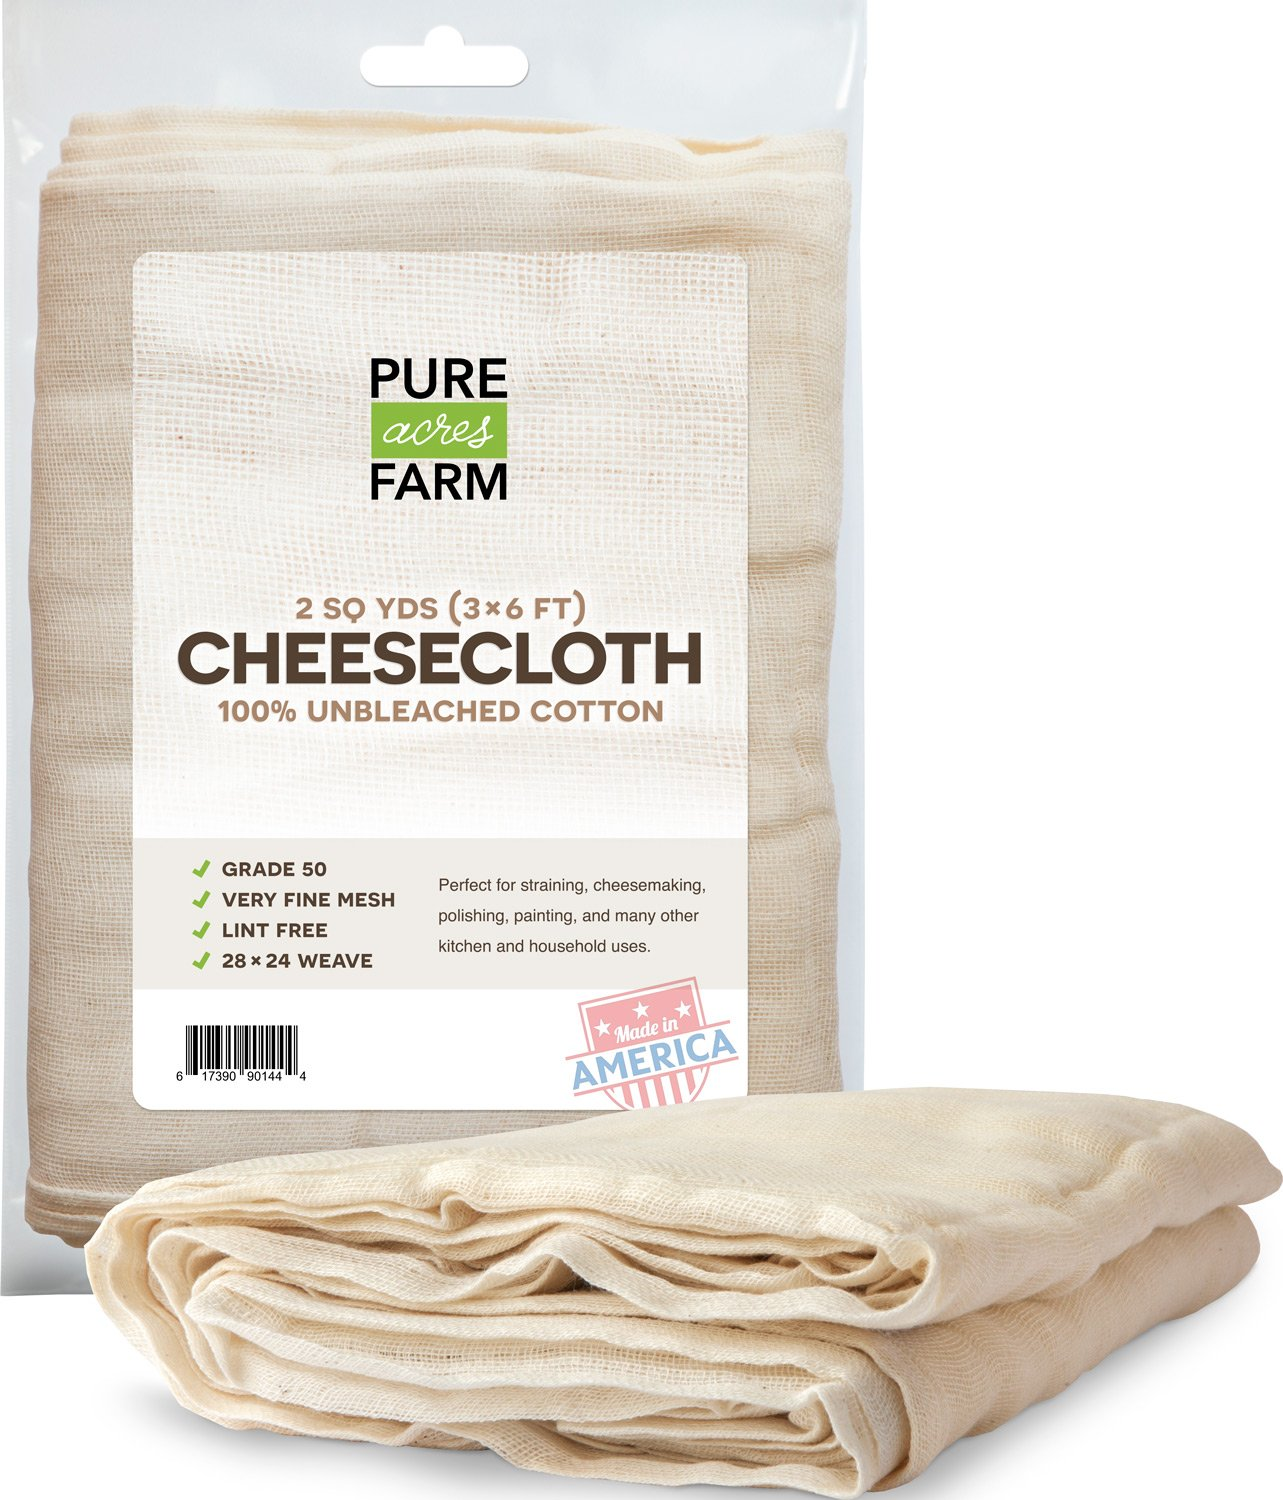 Cheesecloth - 18 Sq Feet: Grade 50 - 100% Unbleached Cotton - Filter - Strain - Reusable